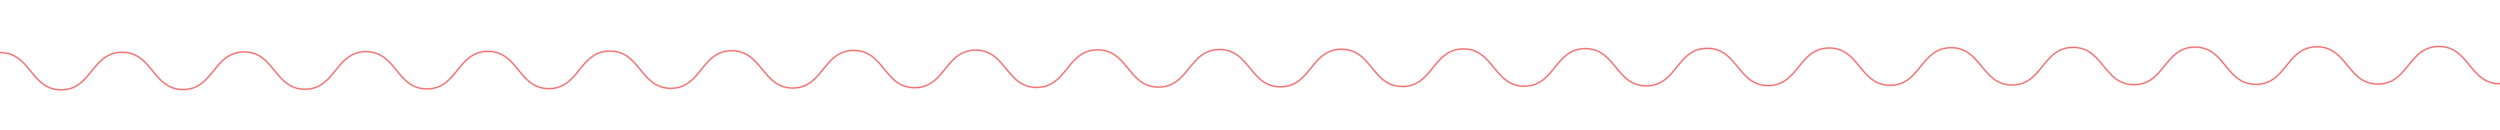 wavy lines-03.png